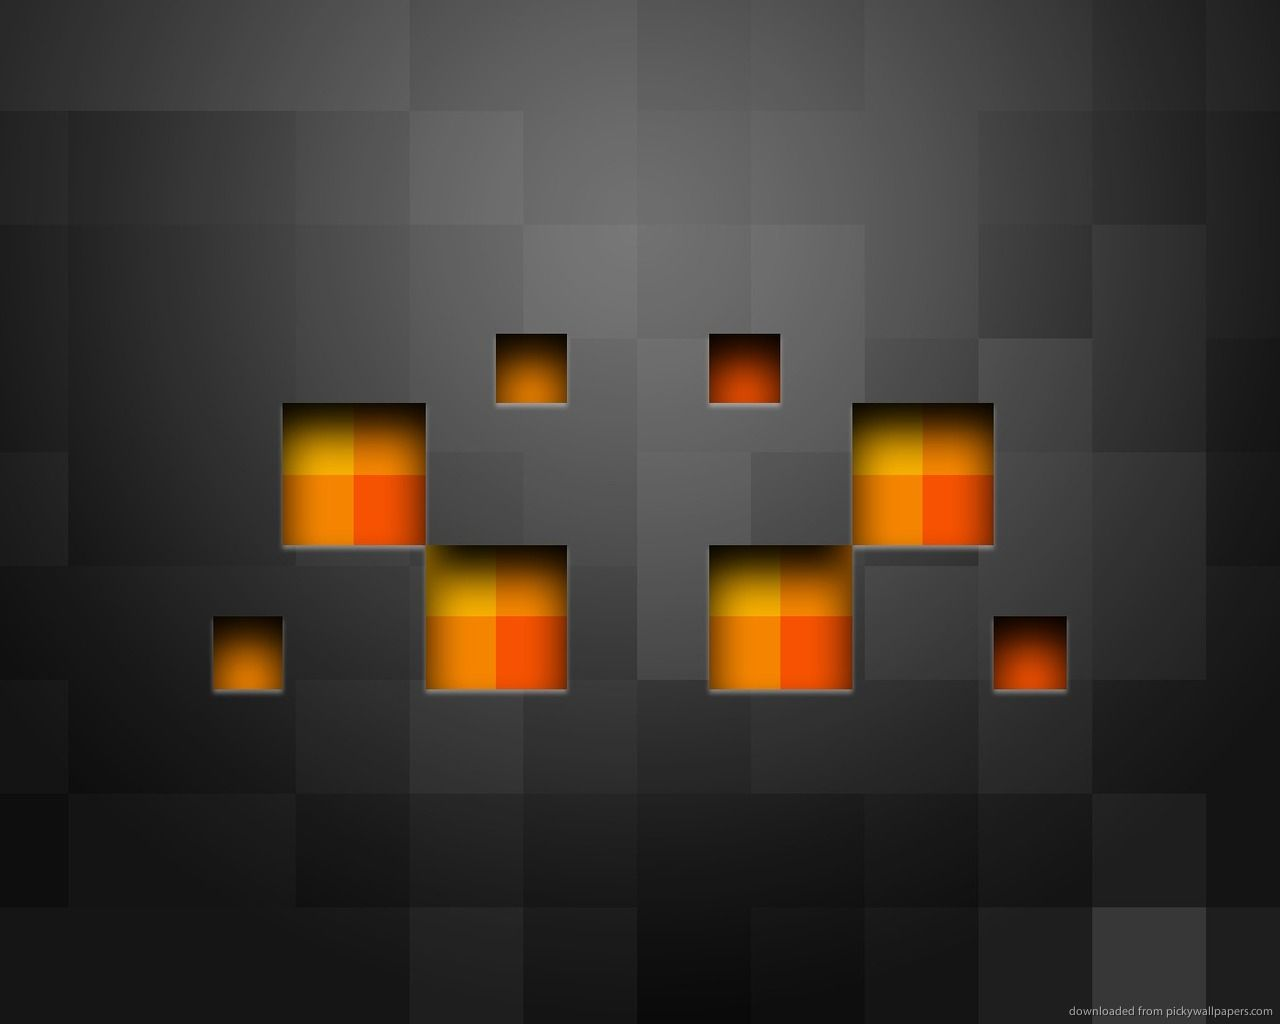 Minecraft HD Wallpapers Backgrounds Wallpaper Page 1280x1024 39